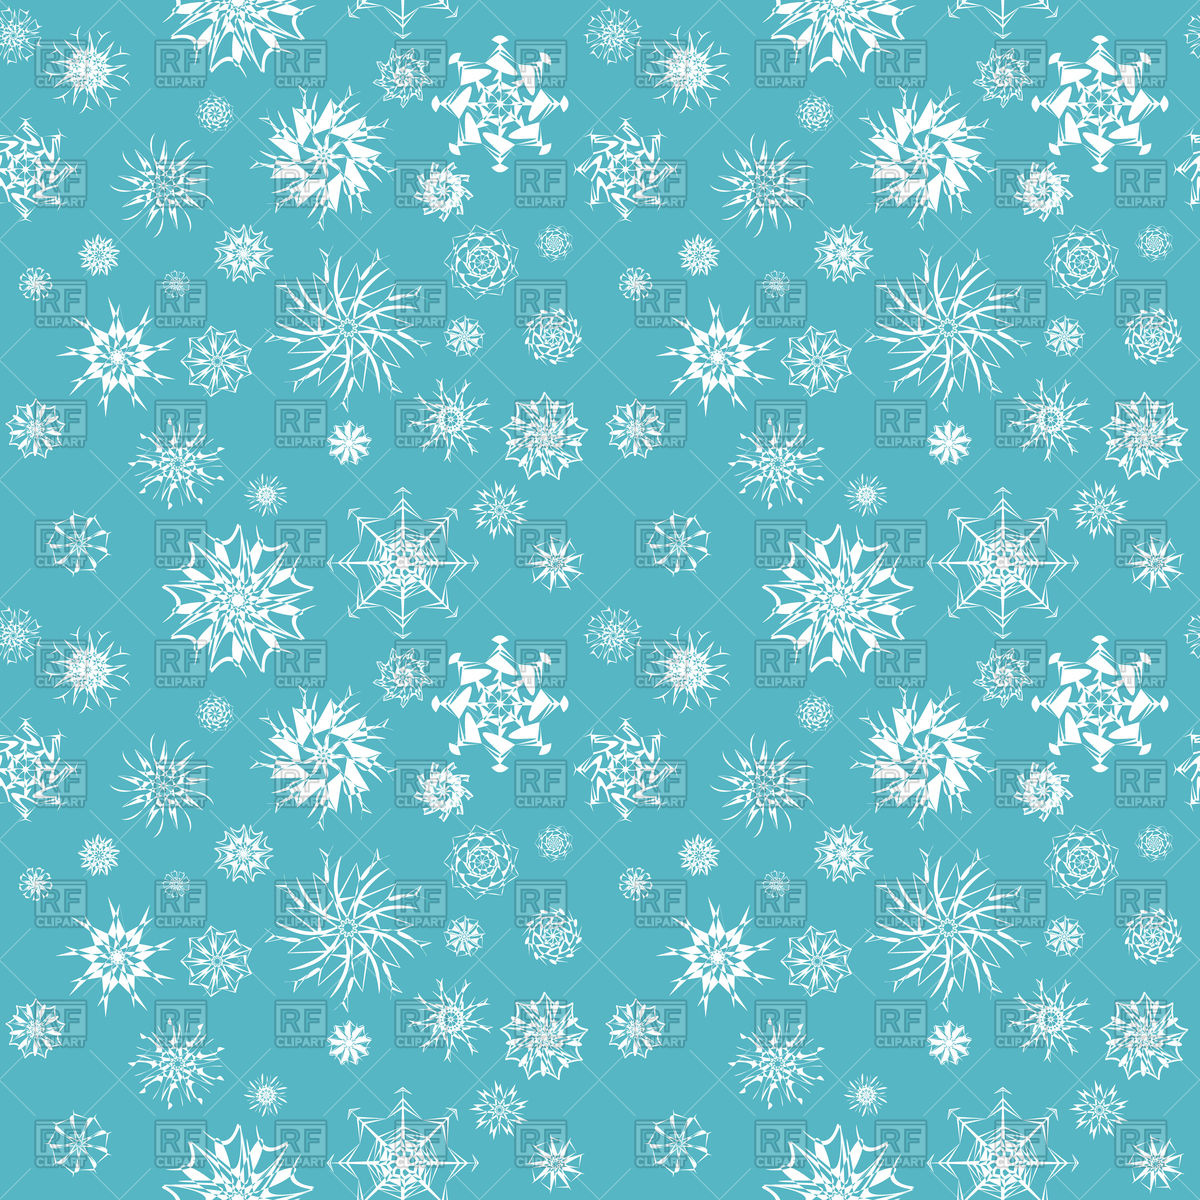 1200x1200 White Christmas Snowflakes On Blue Background Vector Image